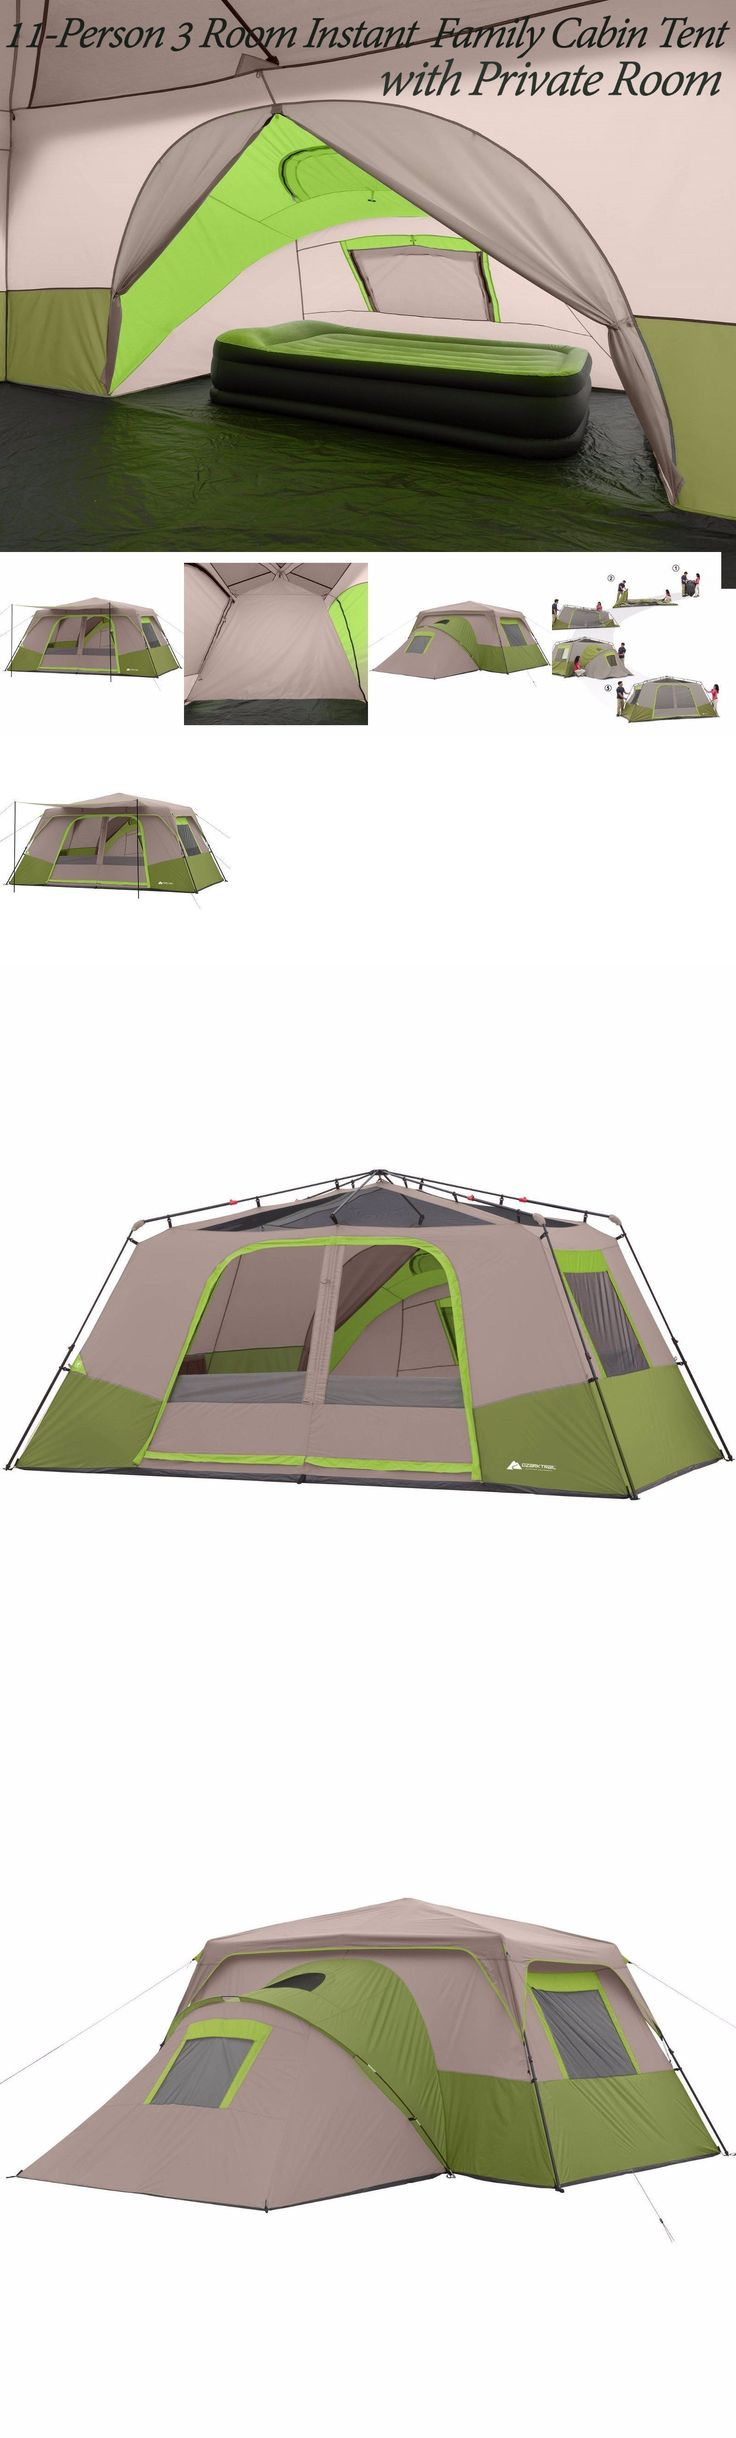 Tents 179010 Ozark Trail 11 Person 3 Room Instant Cabin Family Large Tent C&ing Green  sc 1 st  Pinterest & 1594 best Expedition Tents images on Pinterest | Camping gear ...